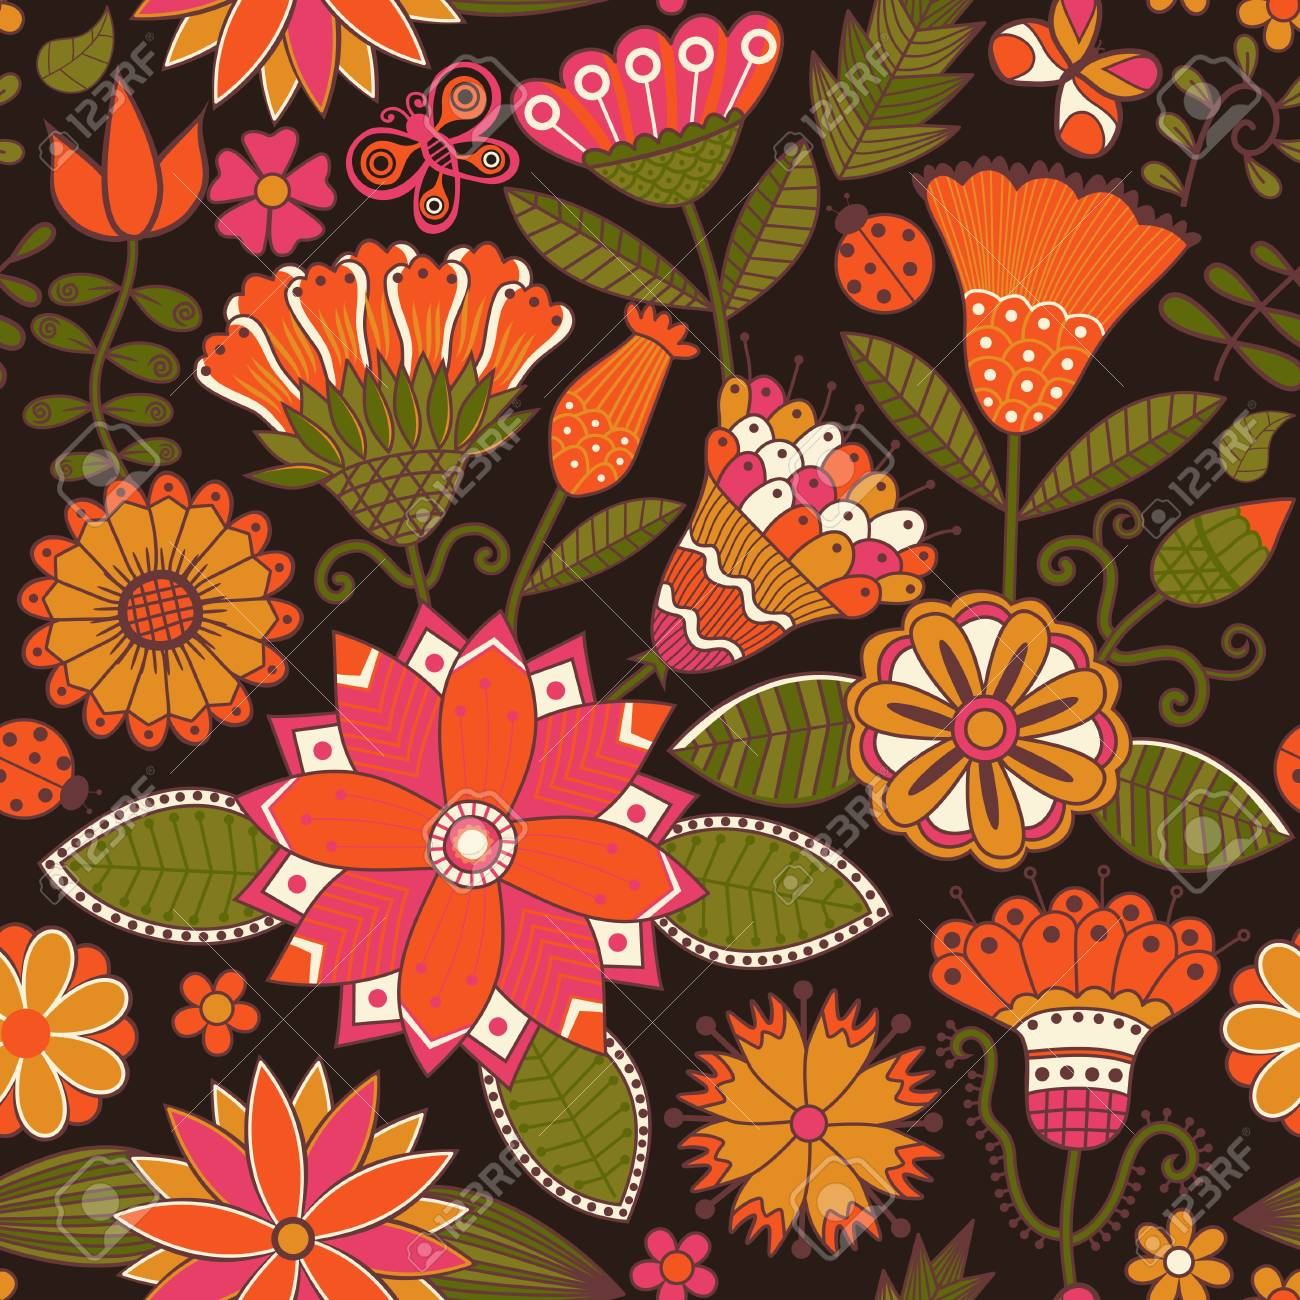 Abstract Floral Background Summer Theme Seamless Pattern Wallpaper Texture Wrapping With